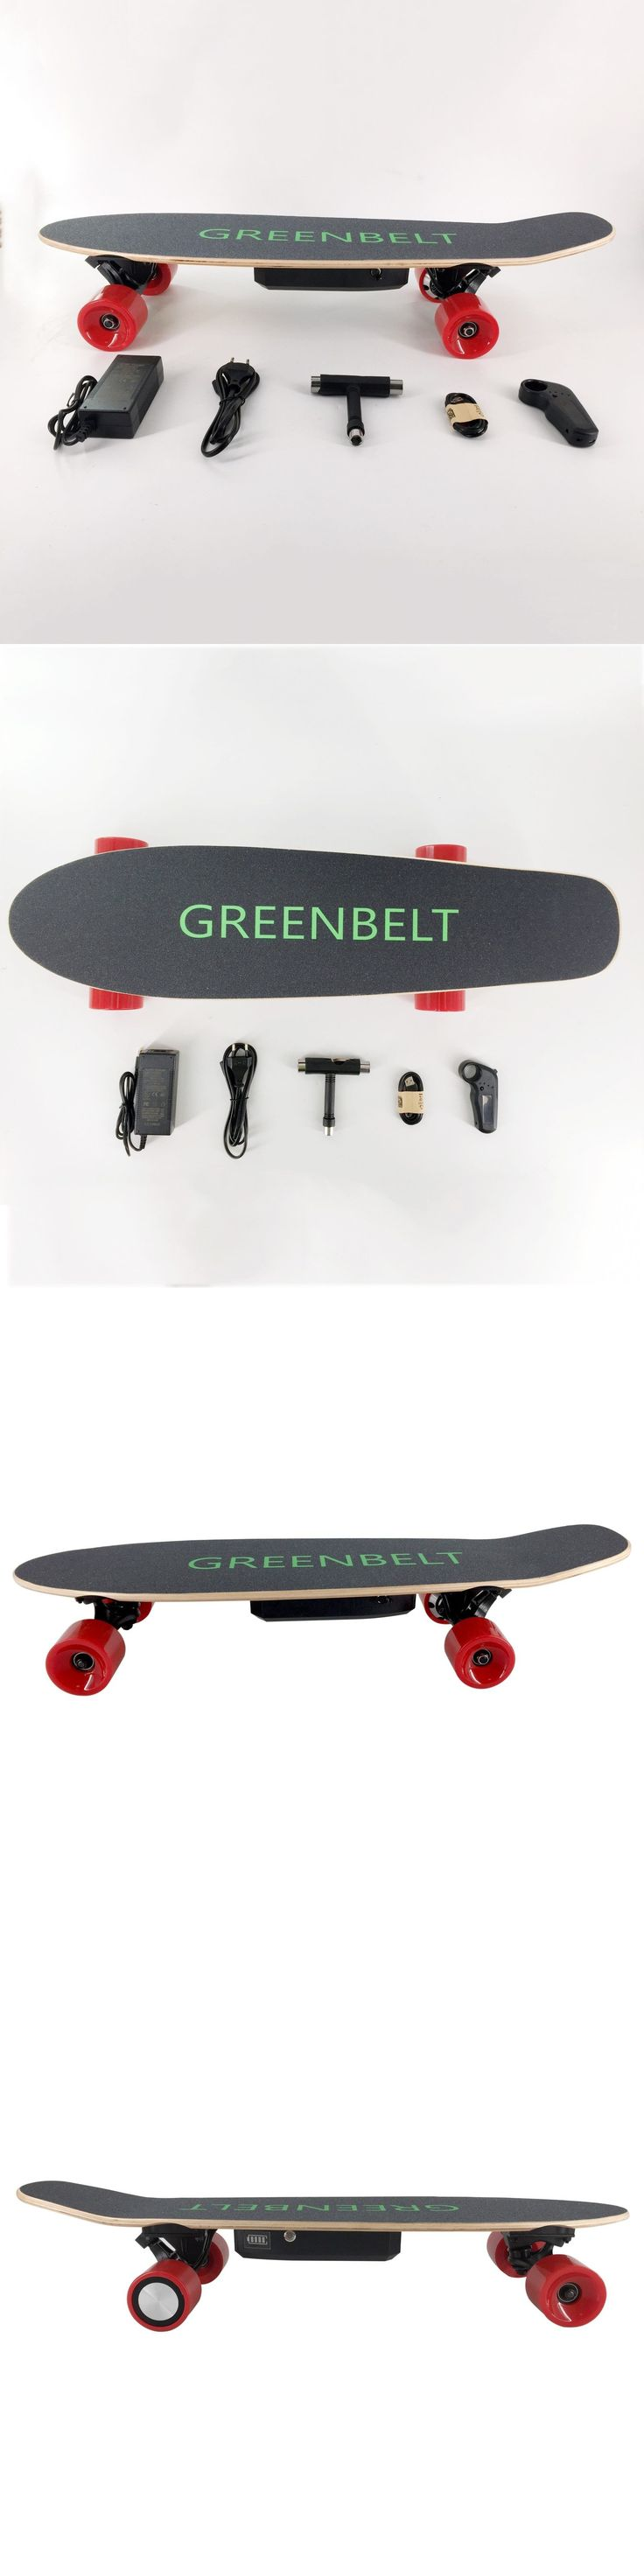 Skateboards-Complete 16264: 29 7-Layer Maple Electric Skateboard With Remote Control And Charger -> BUY IT NOW ONLY: $139 on eBay!